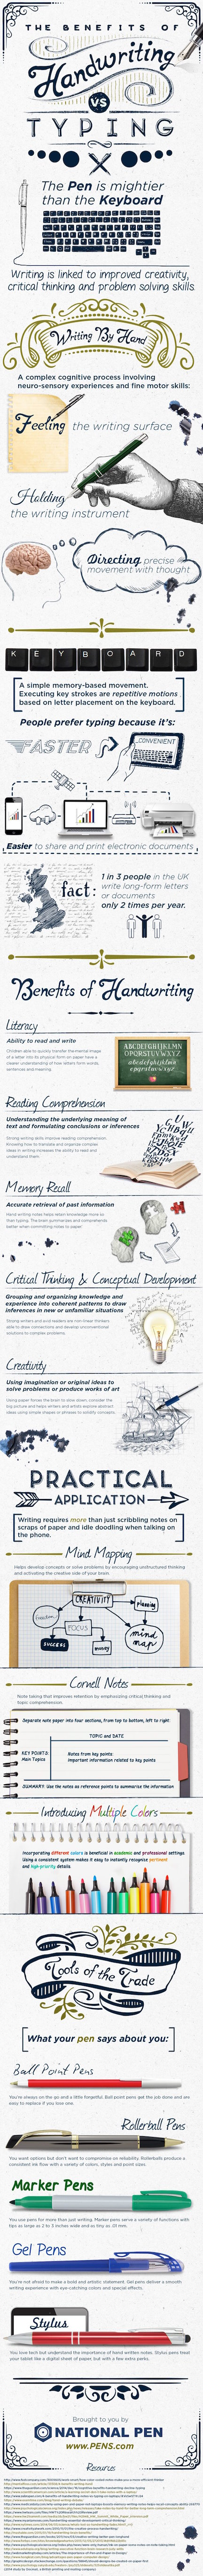 benefits-of-handwriting-vs-typing-infographic